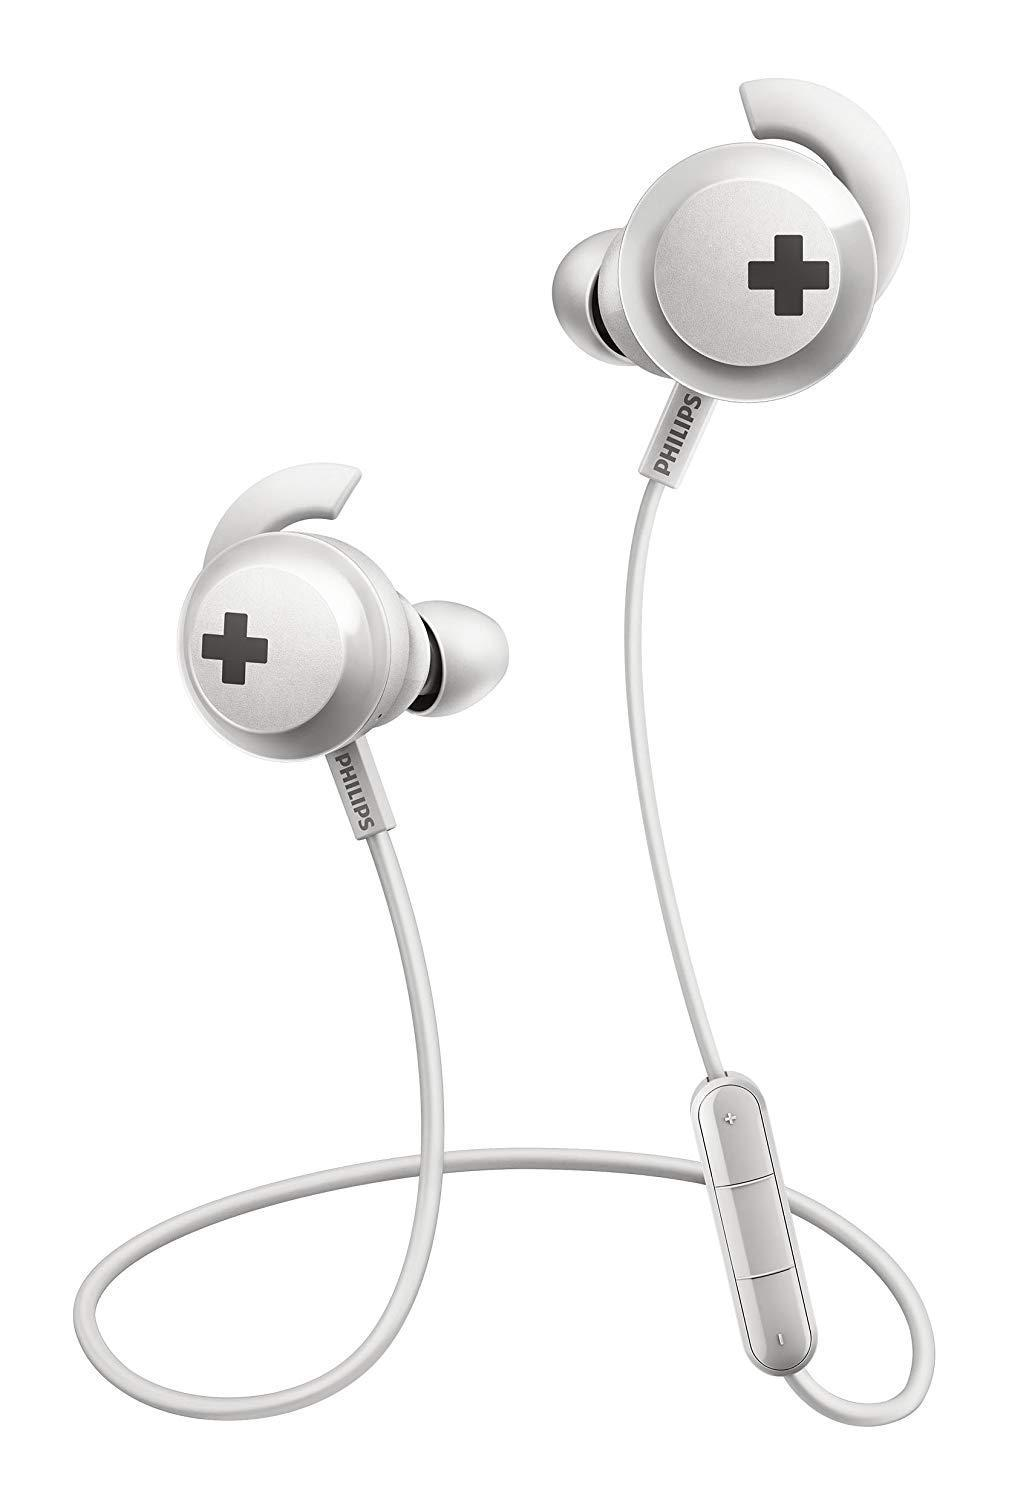 Philips Philippines Headphones For Sale Prices Reviews Pc Headphone Shm1900 Shb4305 Bass Bluetooth Earphones Wireless With Mic White